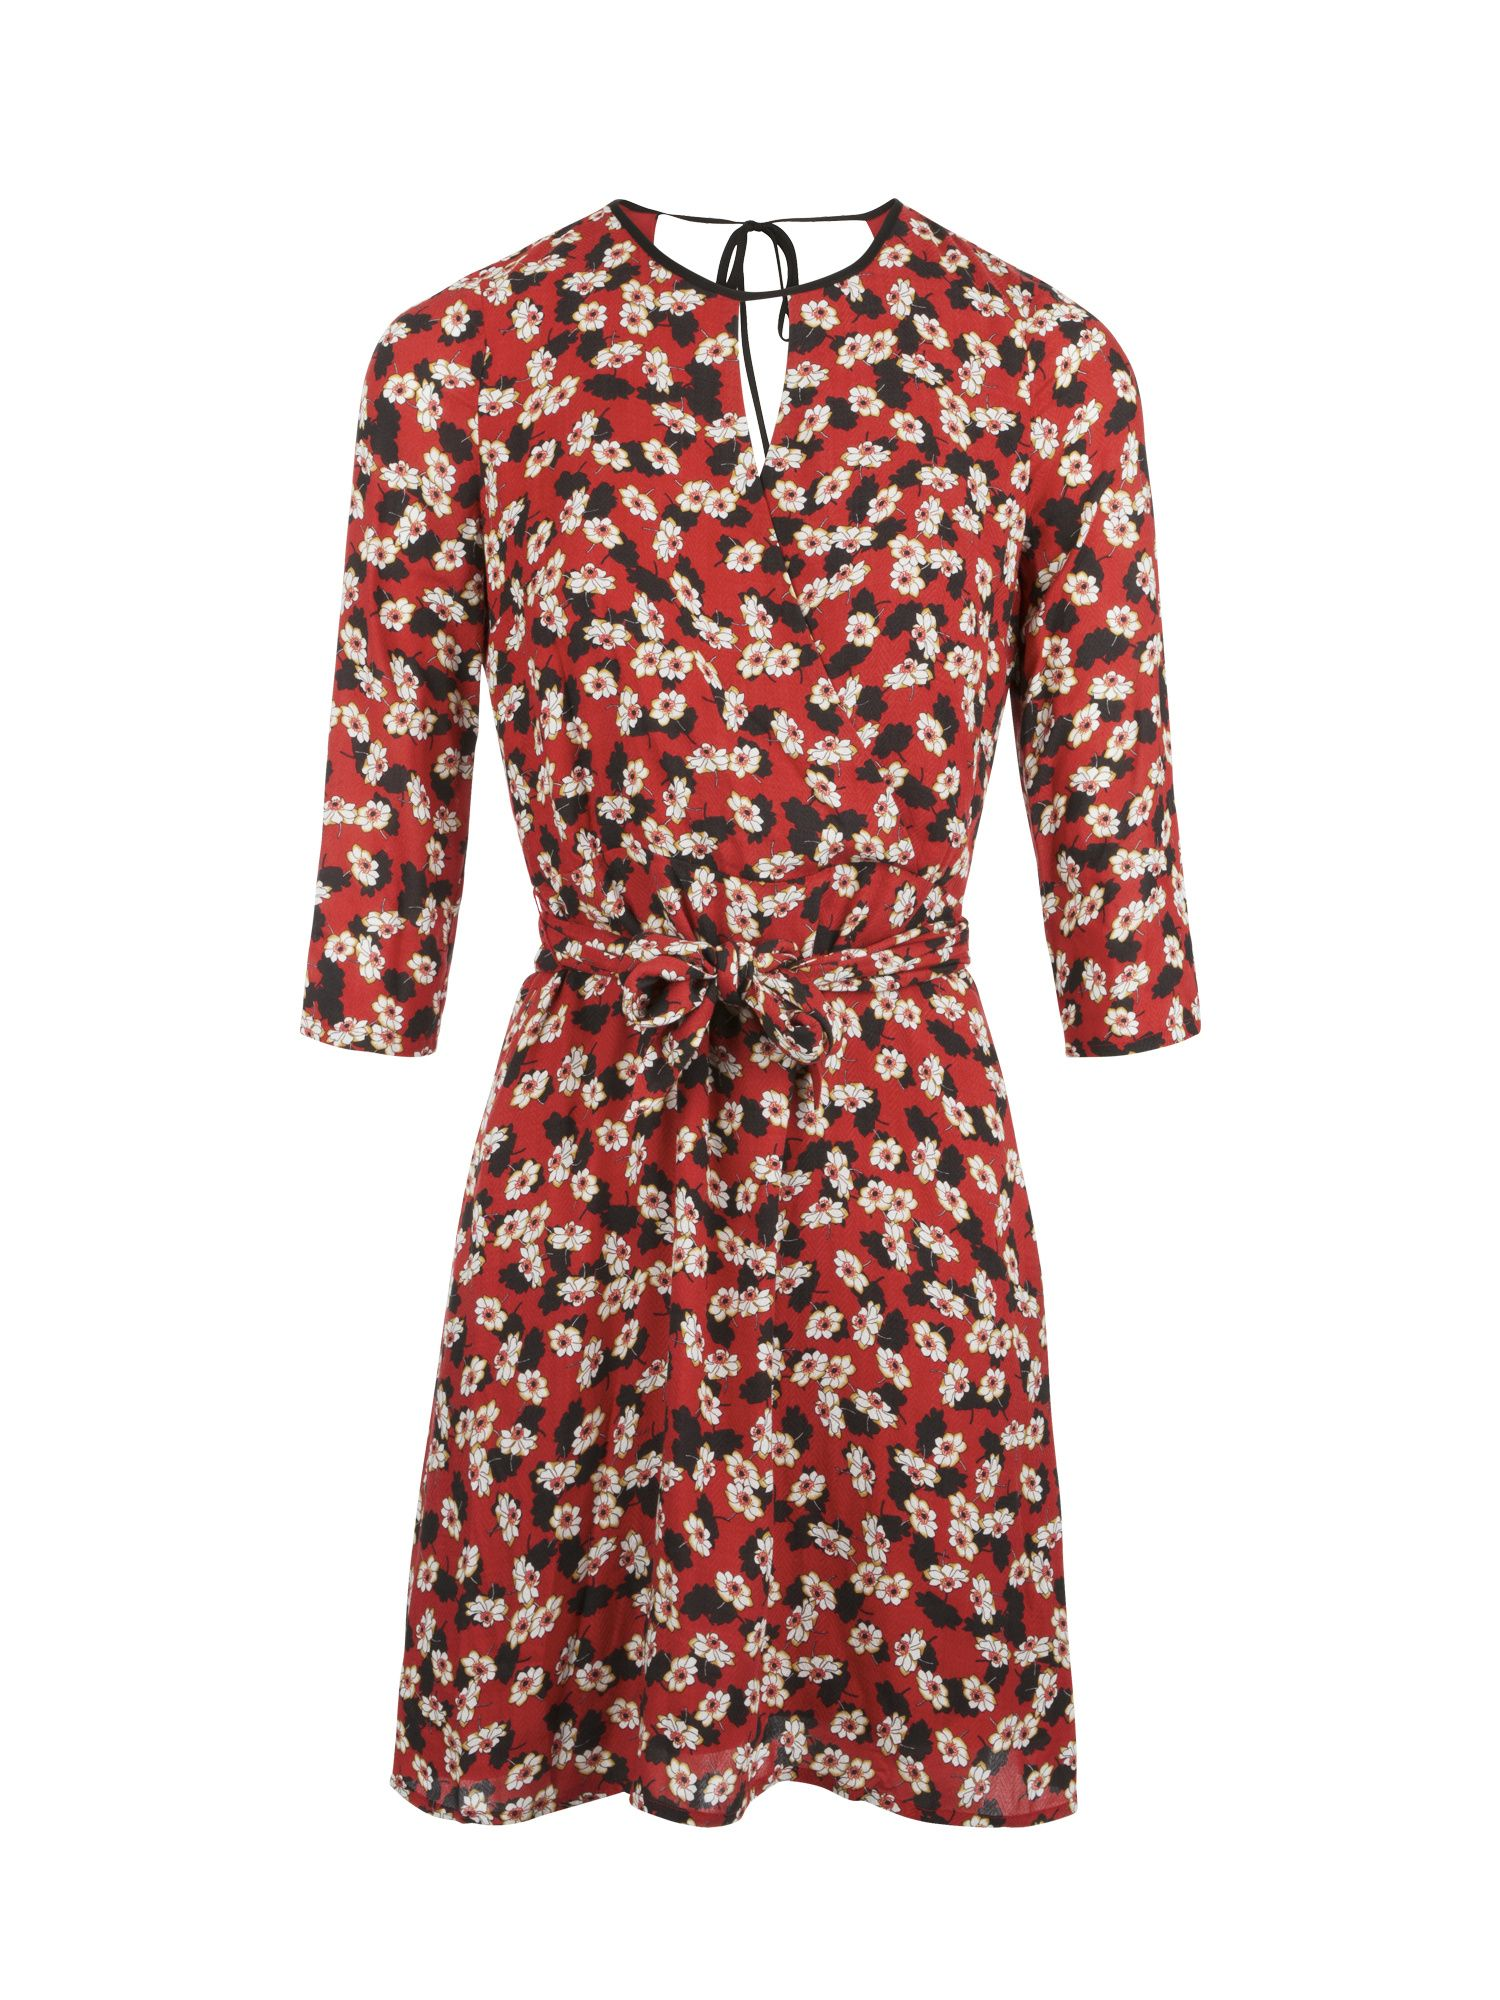 Morgan Floral Print Dress With Cut-Outs, Rust